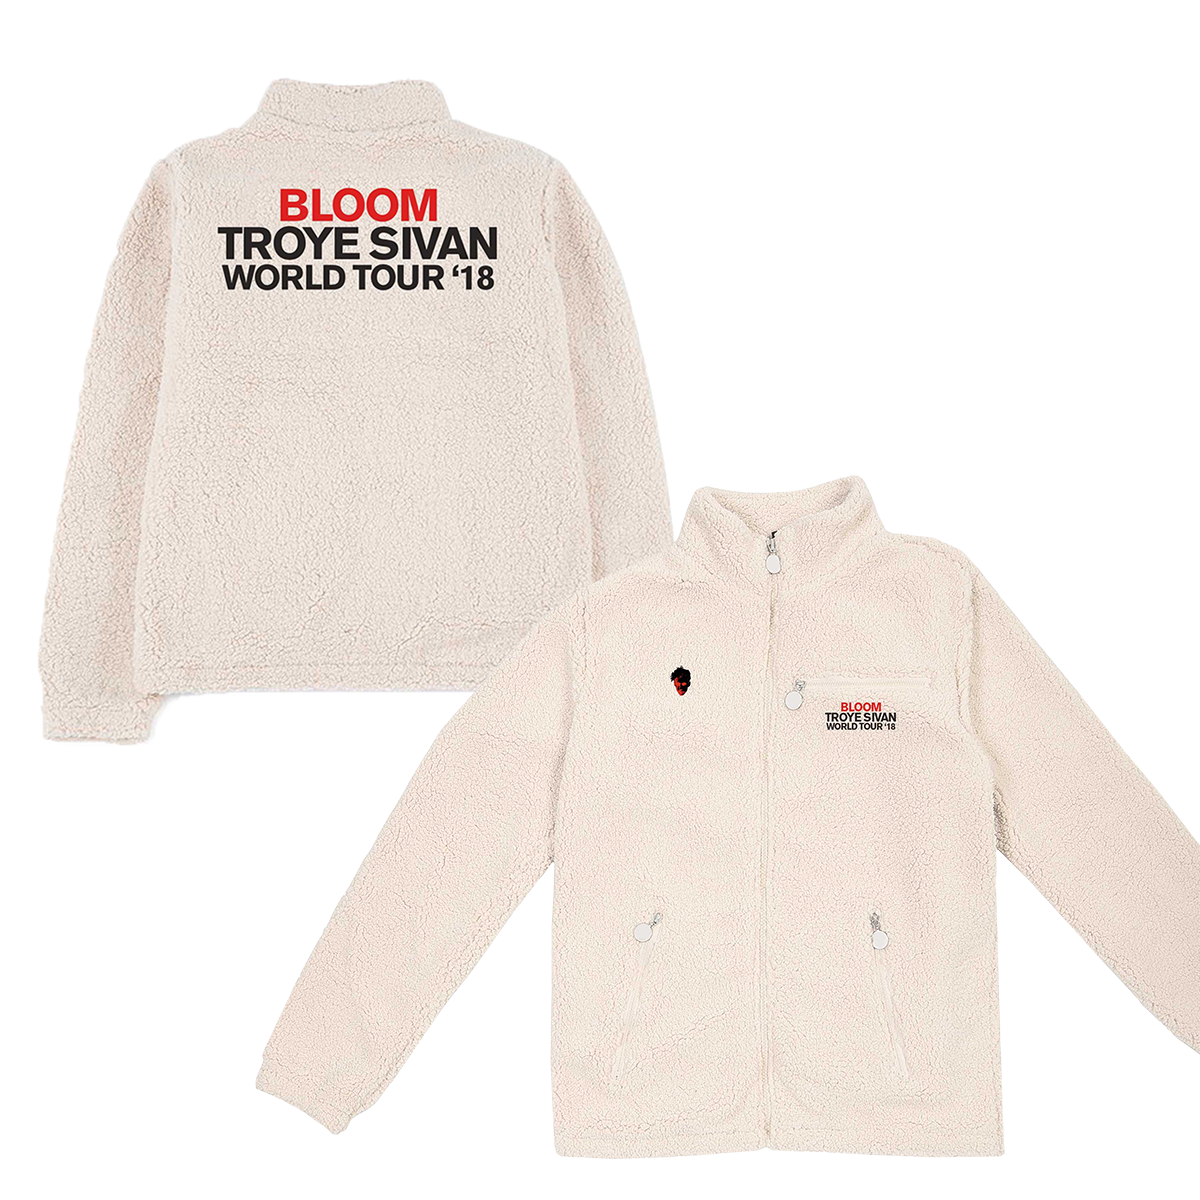 BLOOM TOUR SHERPA JACKET-Troye Sivan